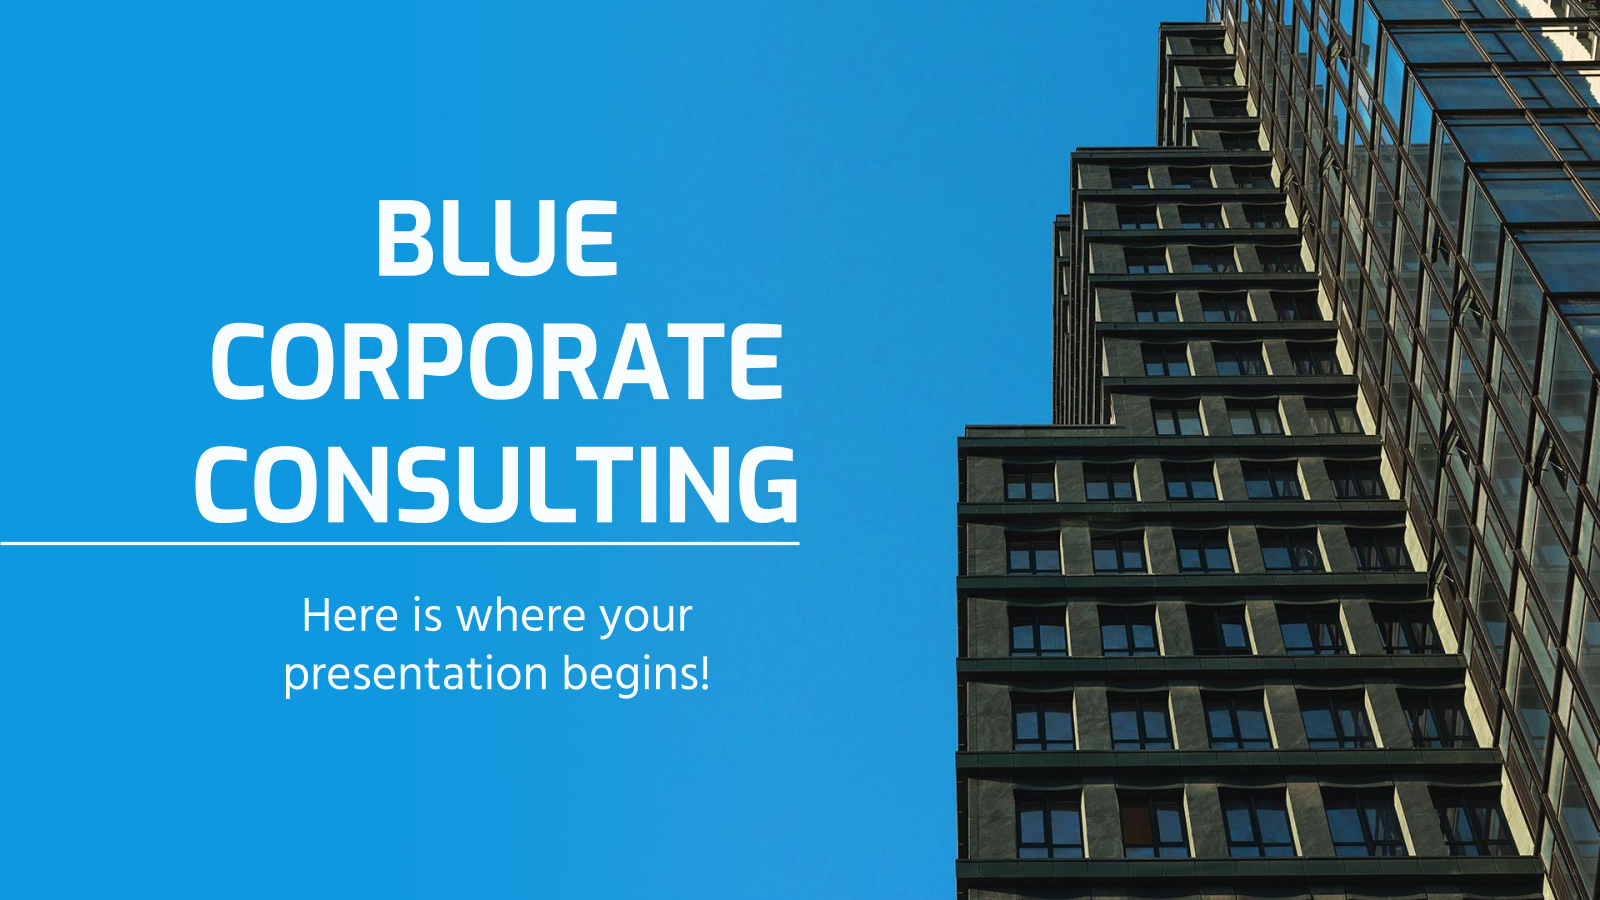 Blue Corporate Consulting presentation template